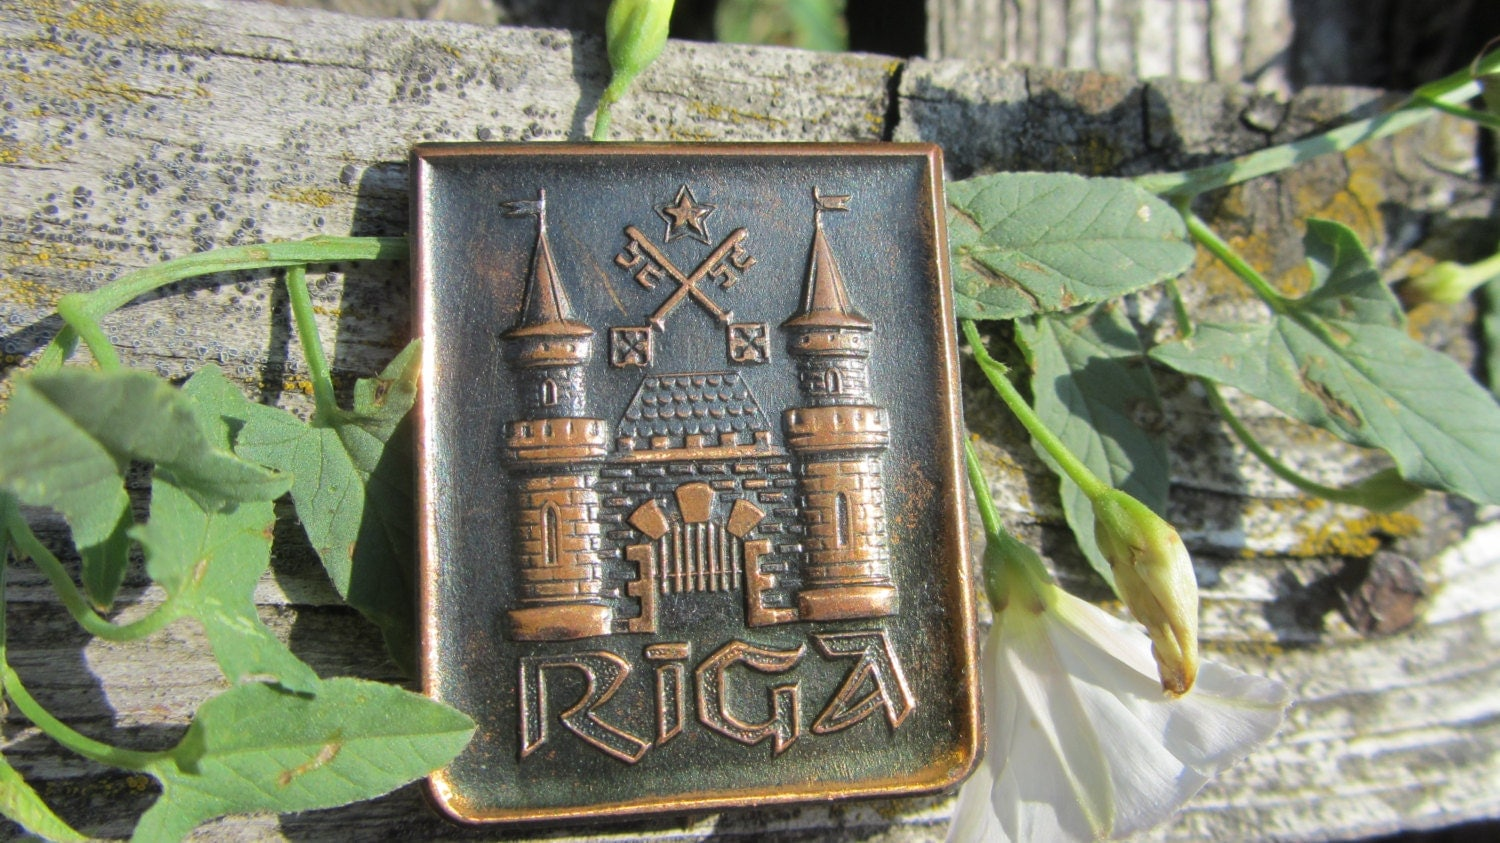 Soviet Vintage Copper Pin Badge Riga City Pin USSR in 1970s, rare pin sigh, deco